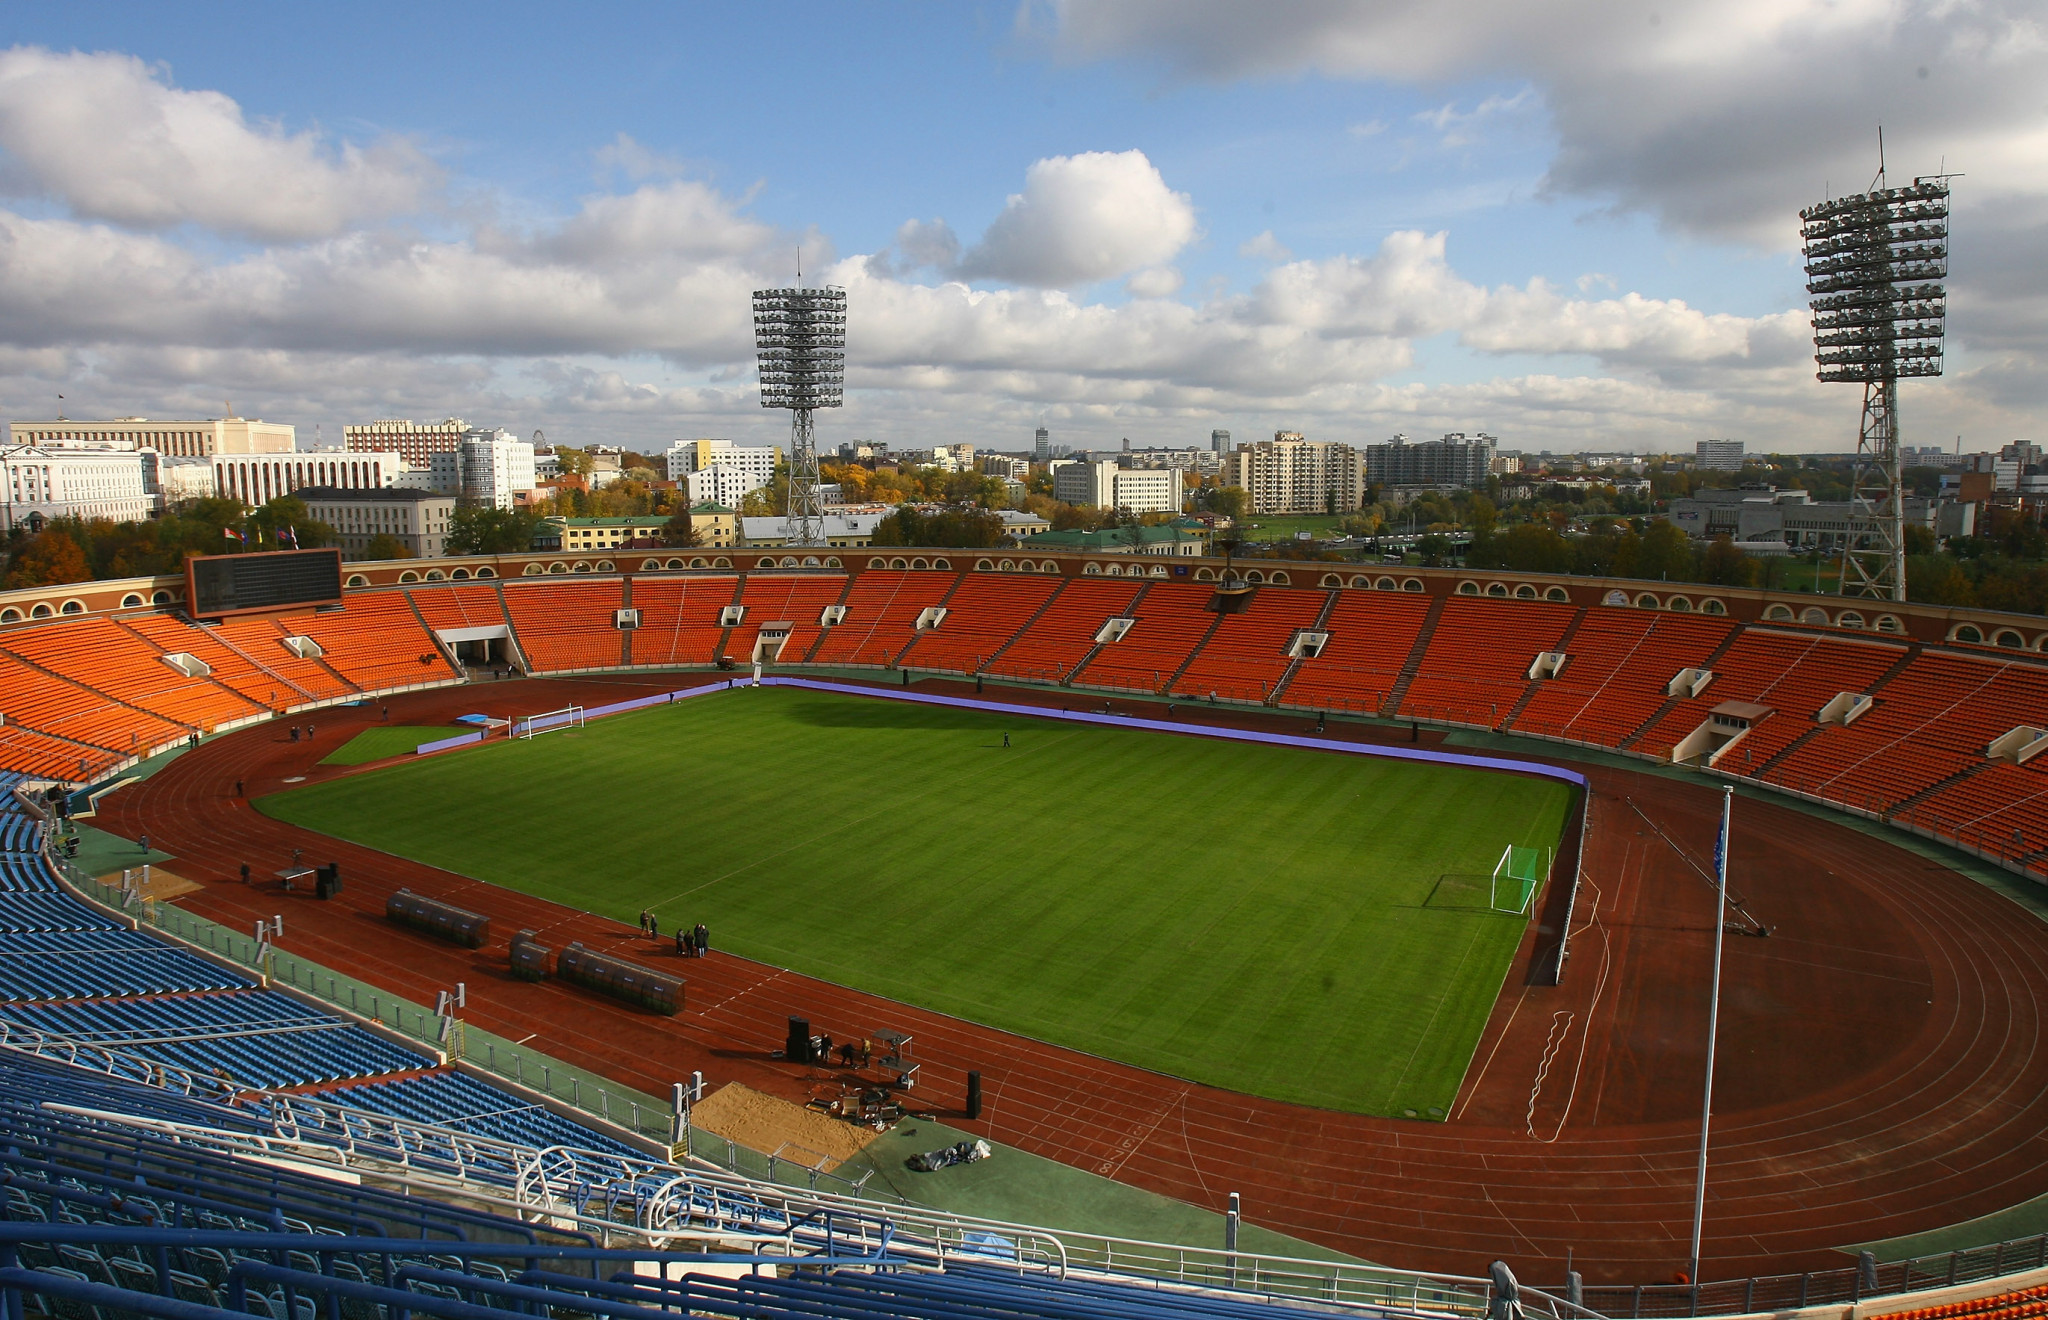 Coe and Clegg impressed with Minsk's Dinamo Stadium ready for European Games